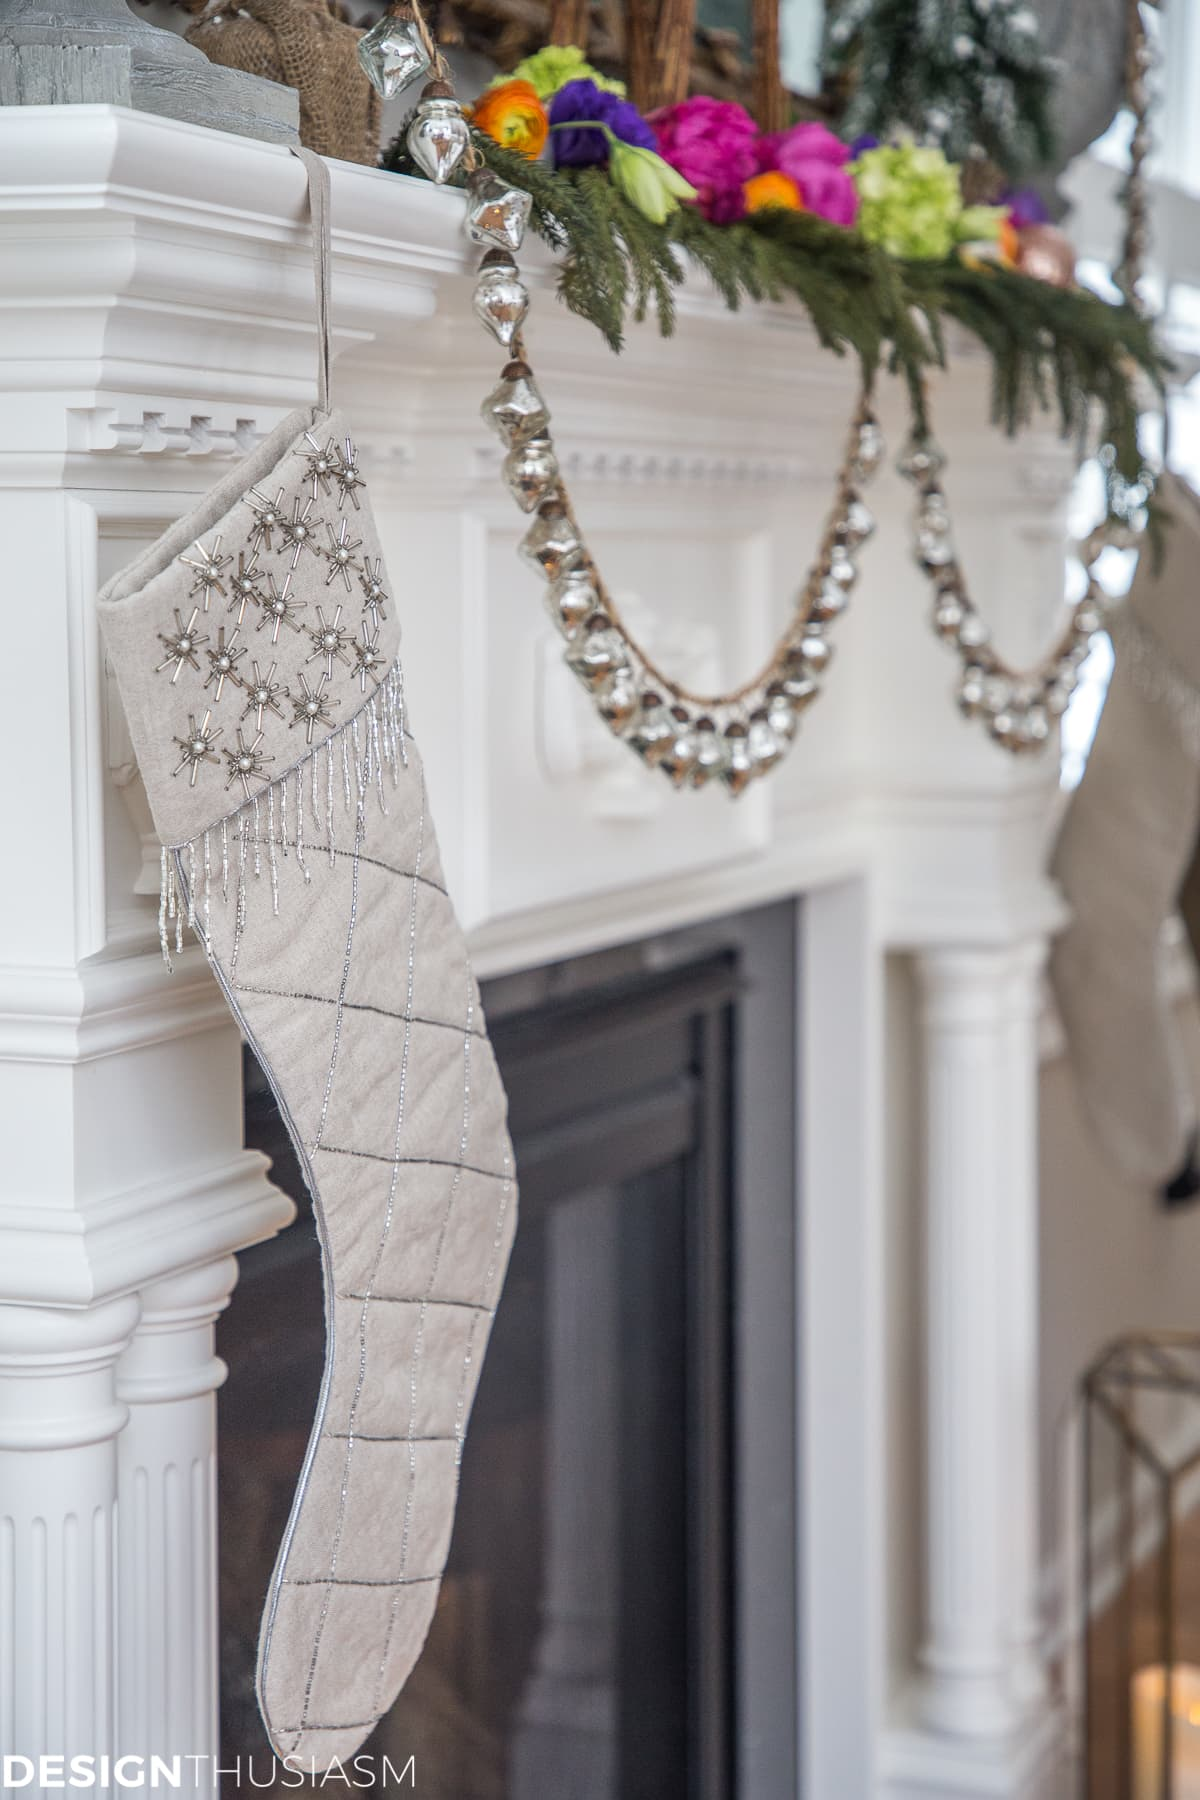 Christmas Mantel Ideas: Classic Decorating with a Twist